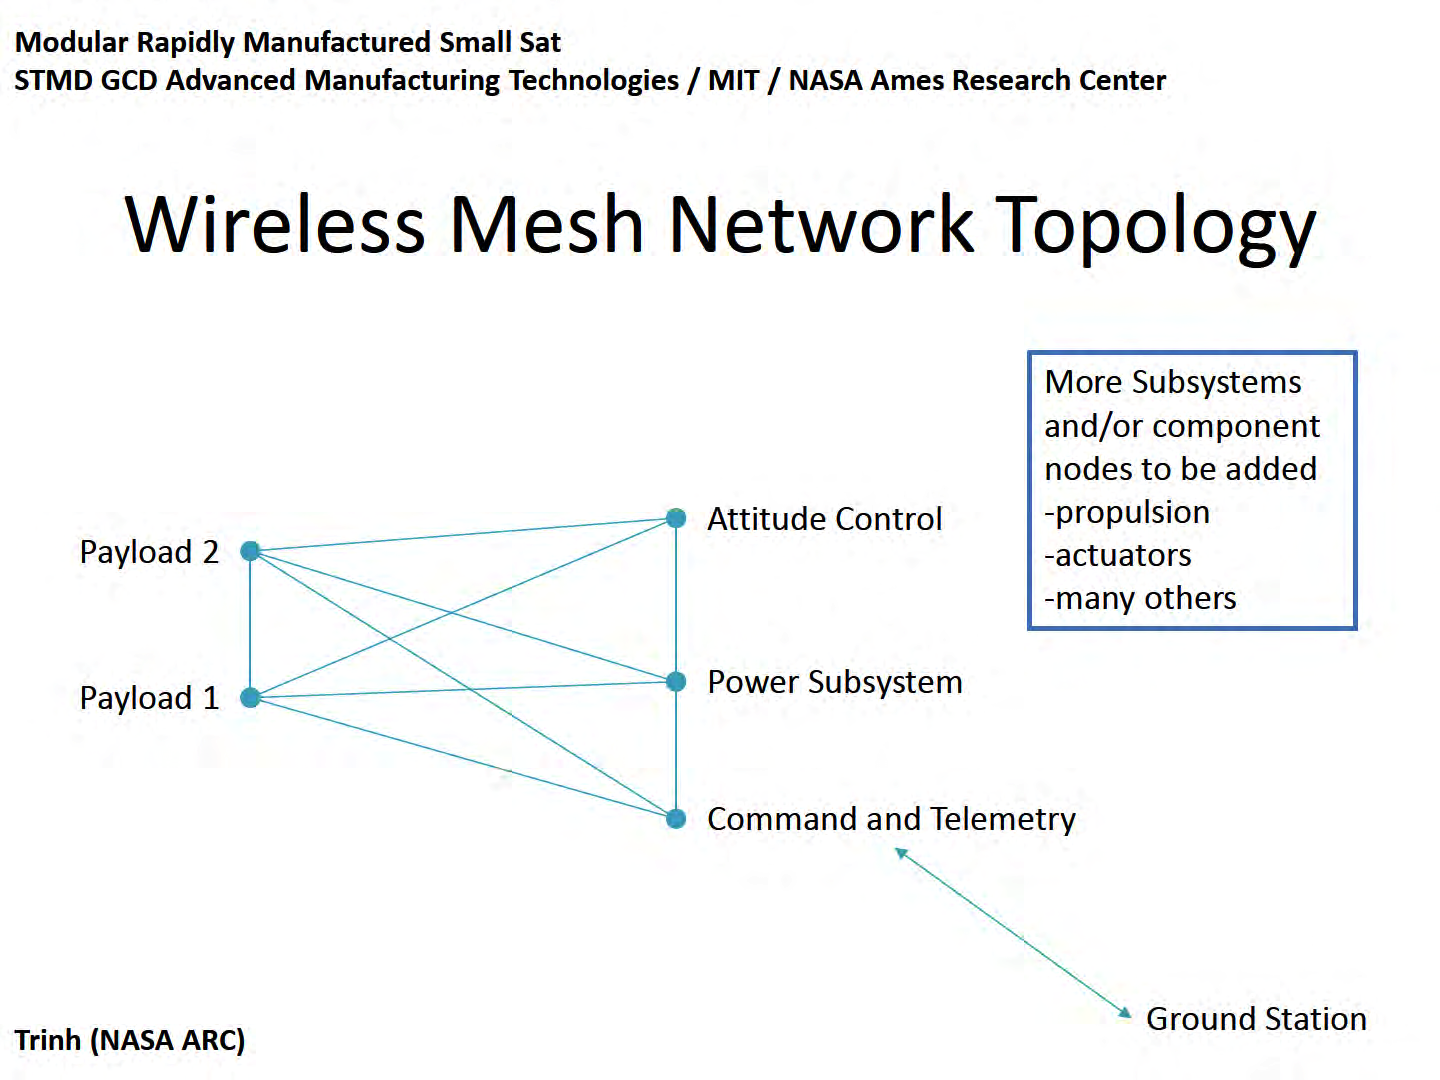 Wireless Mesh Network Topology (Modular Rapidly Manufactured Small Sat)